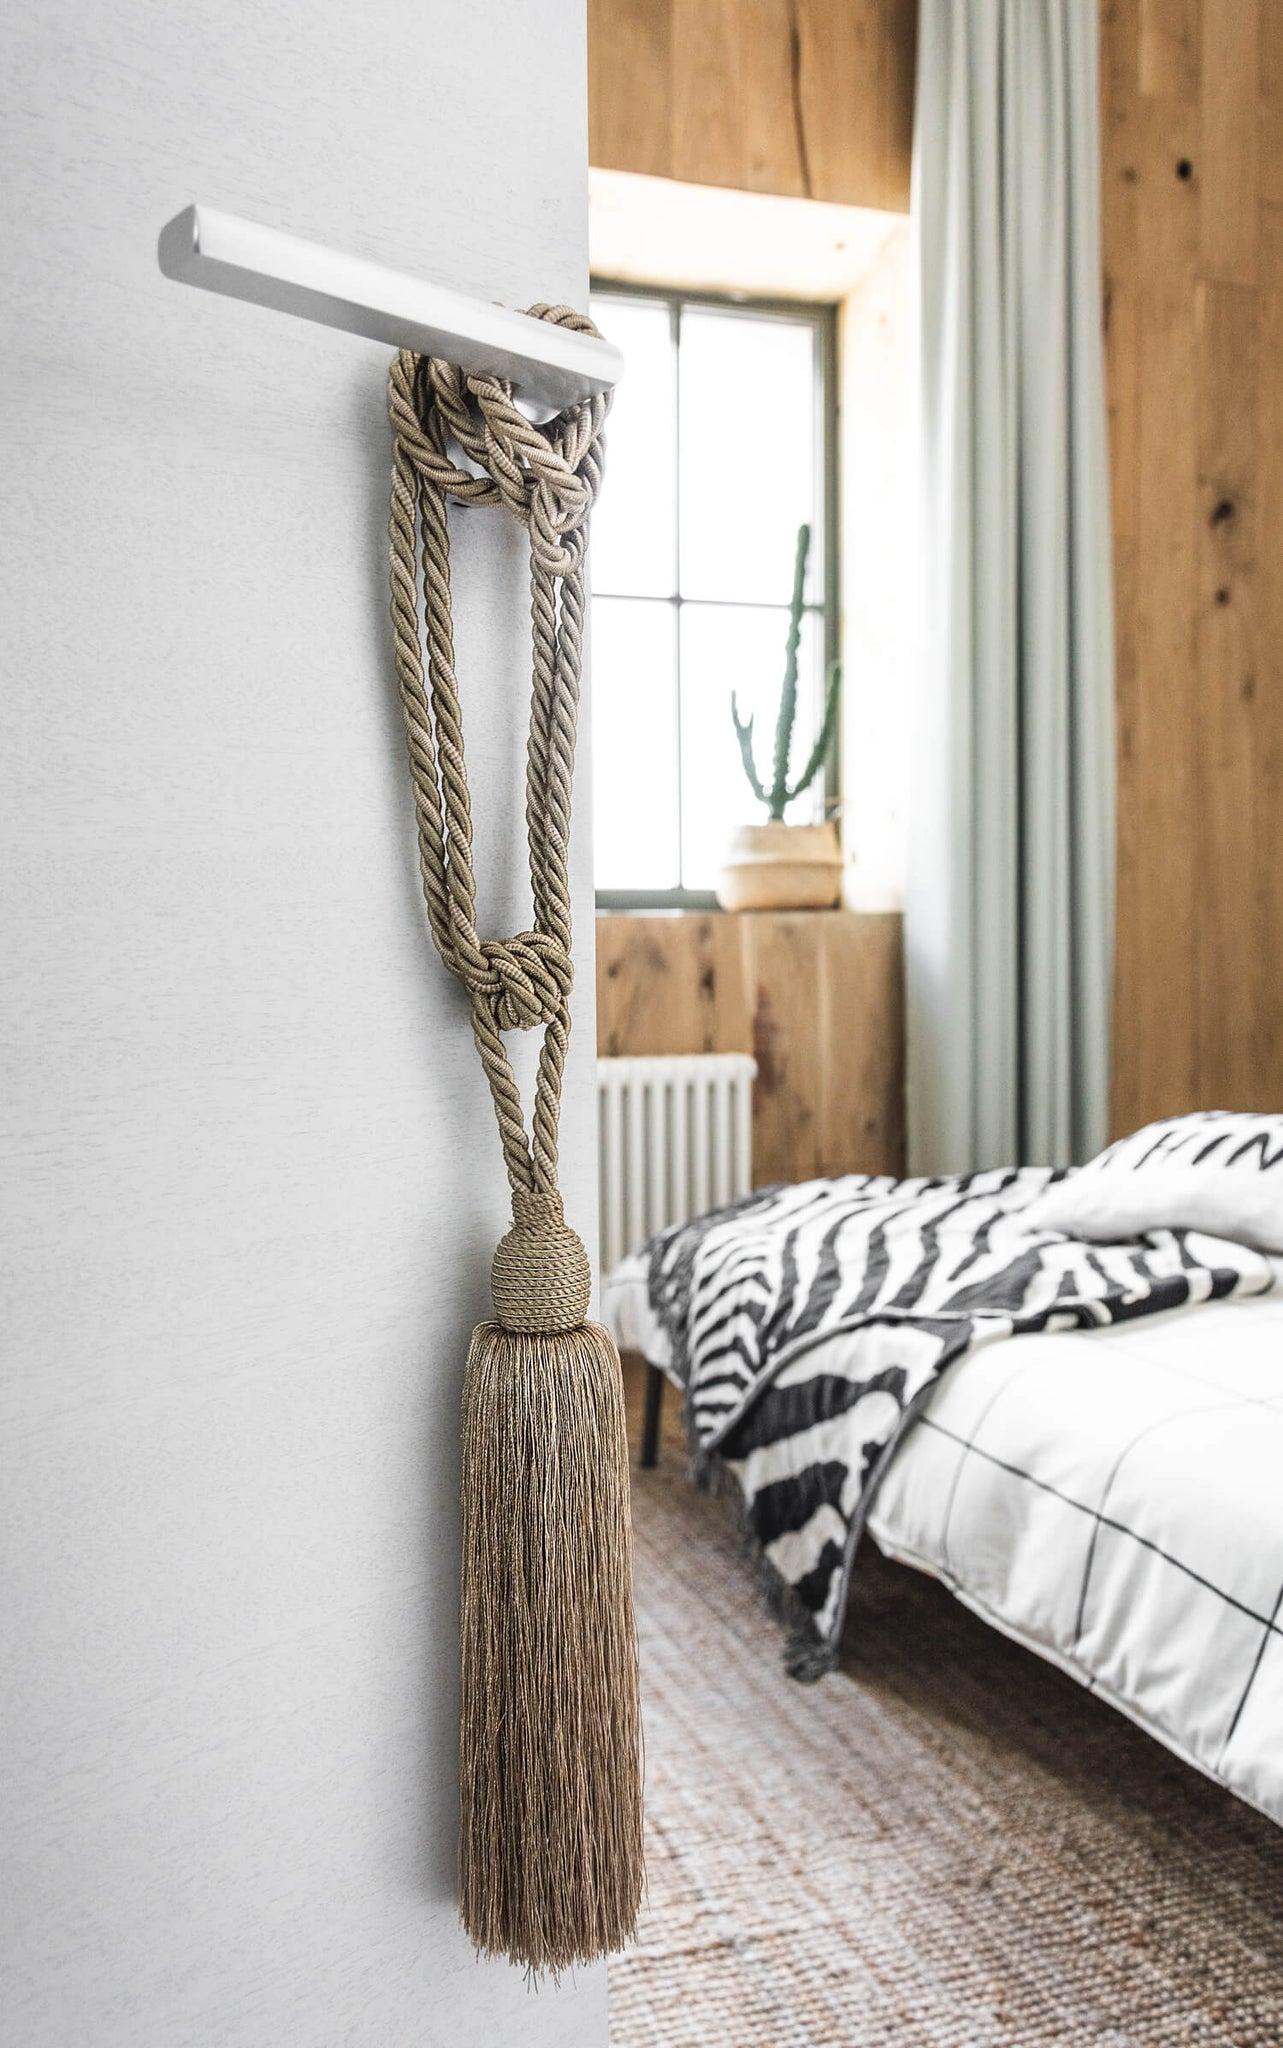 Boho bedroom decor, golden tassel on door knob